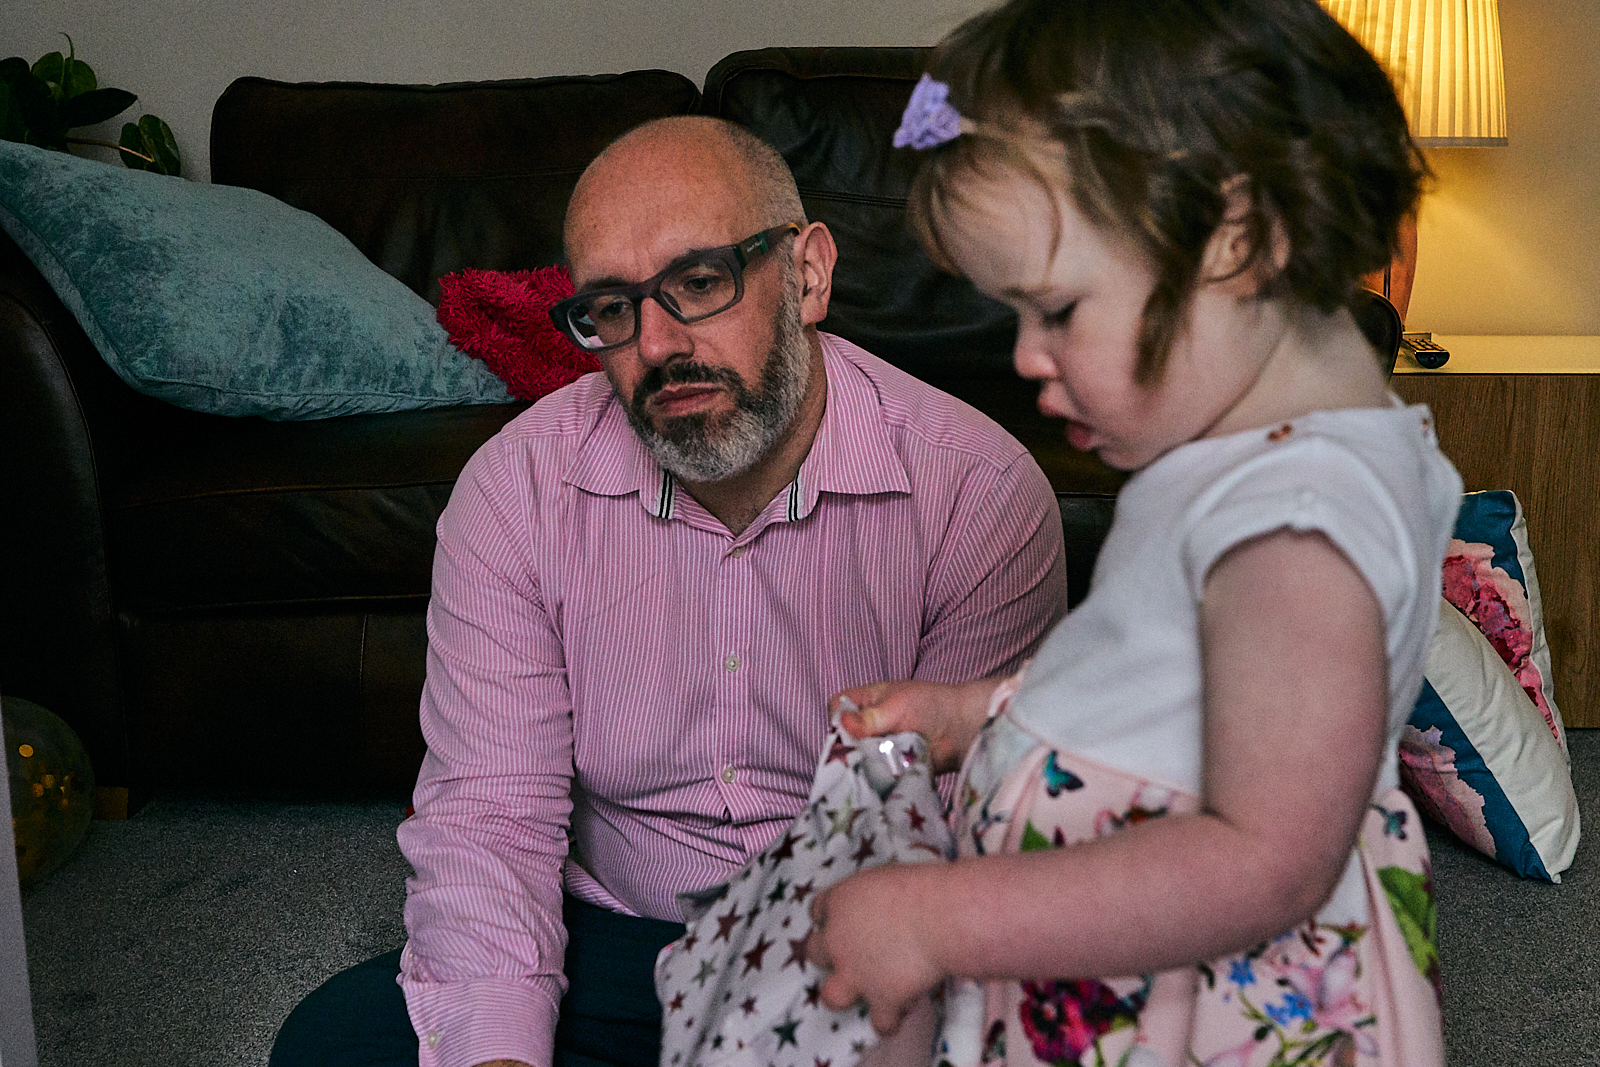 documentary photo of dad looks tired and fed up after naming day